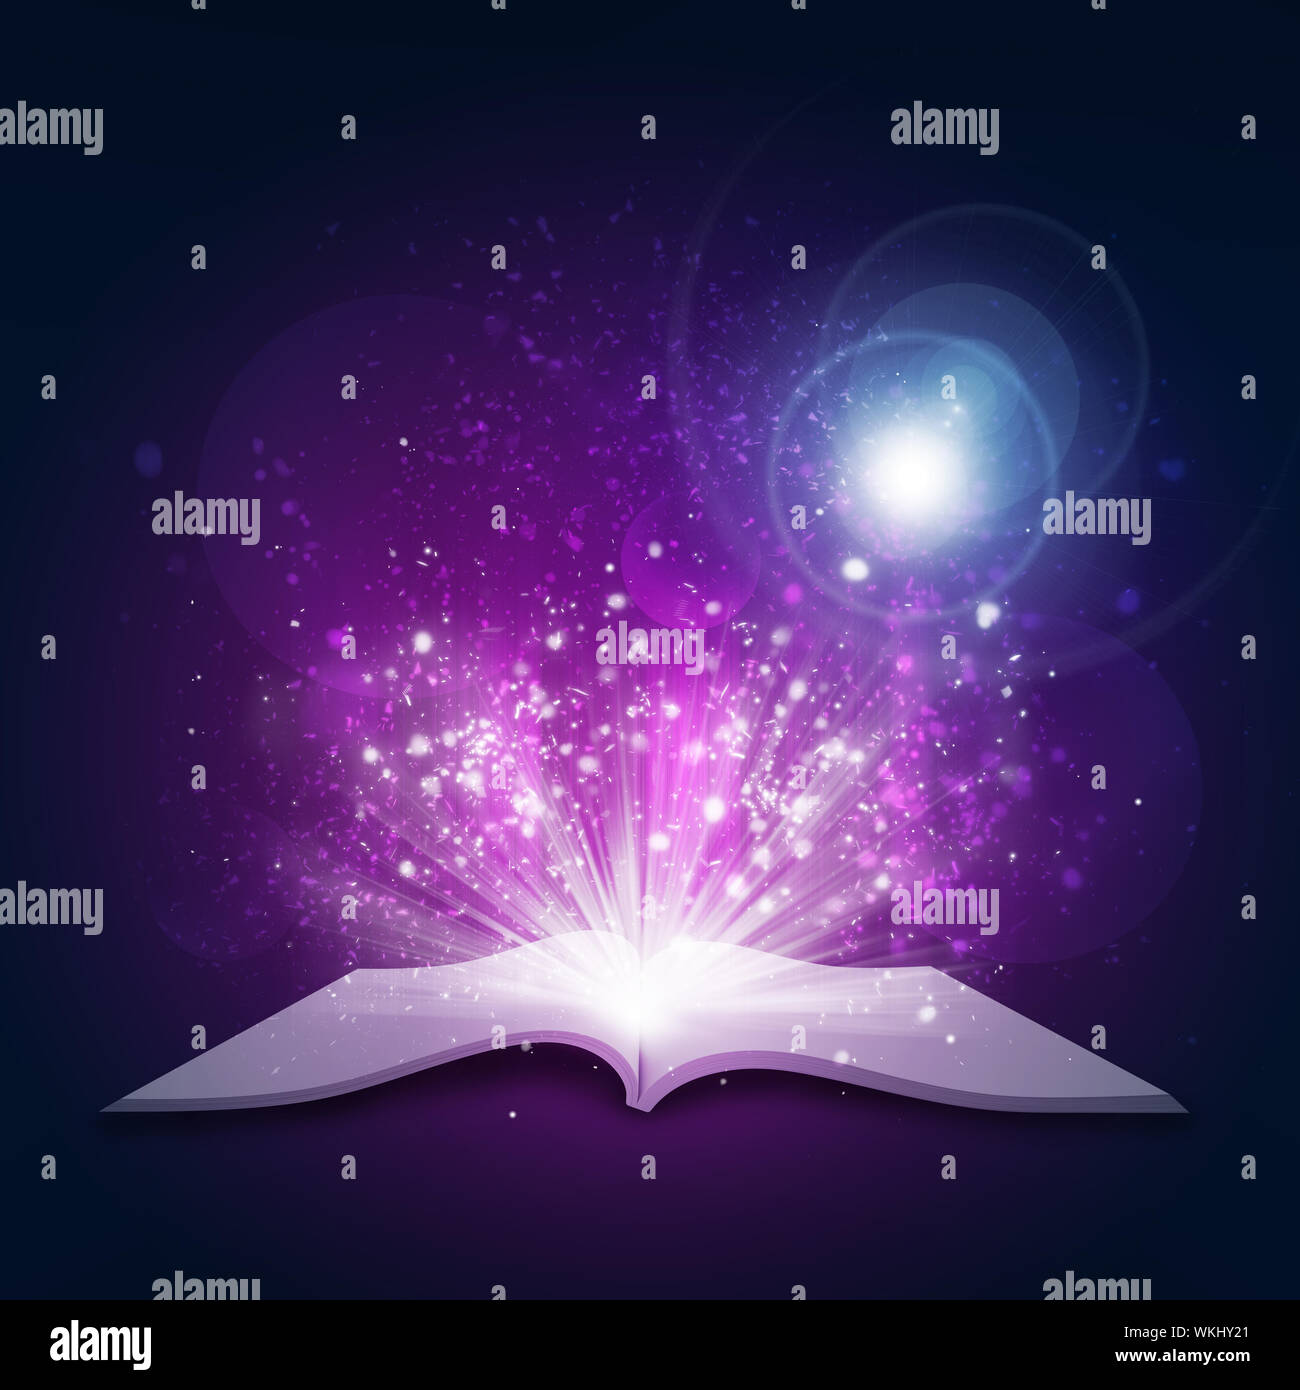 Old open book with magic light and falling stars. Dark background Stock Photo